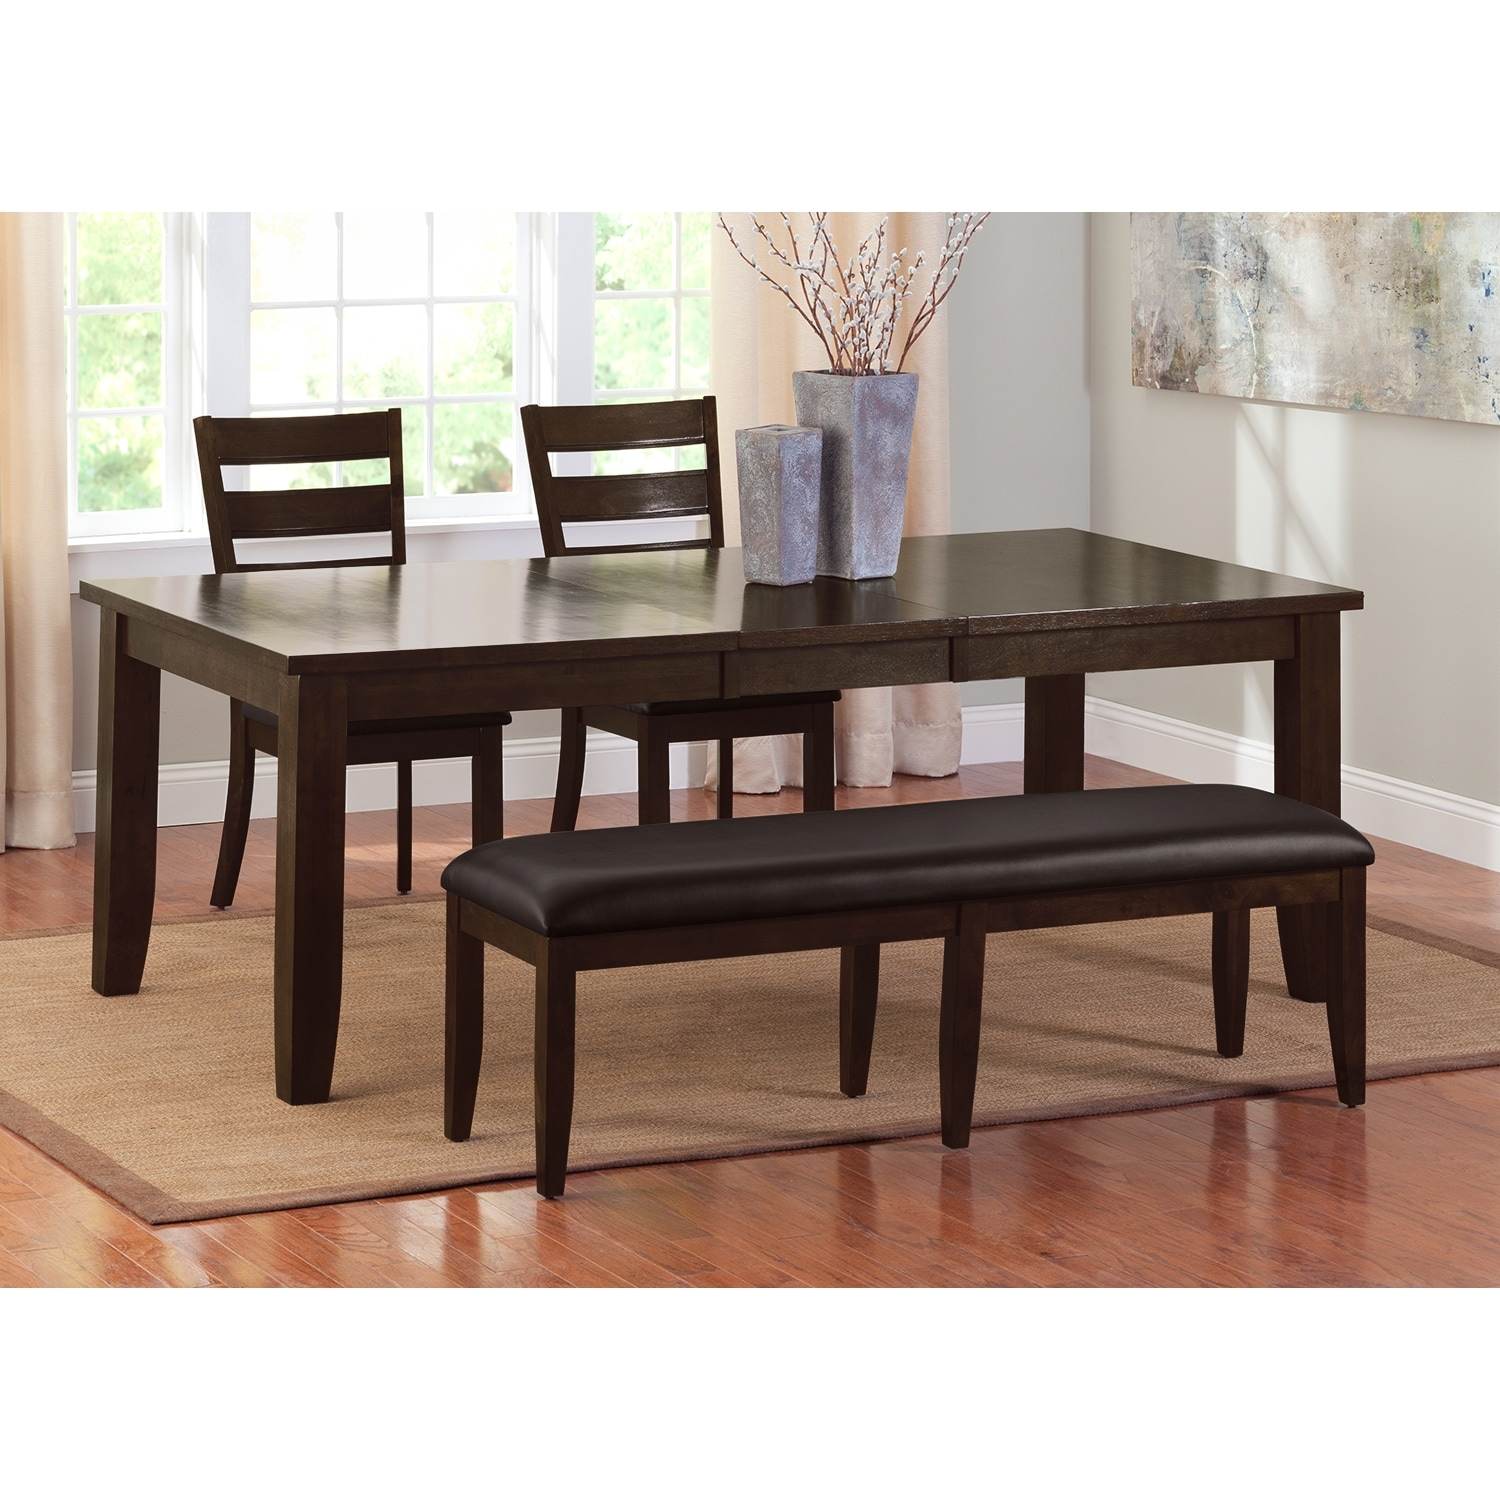 Abaco Table 2 Chairs And Bench Brown American Signature Furniture